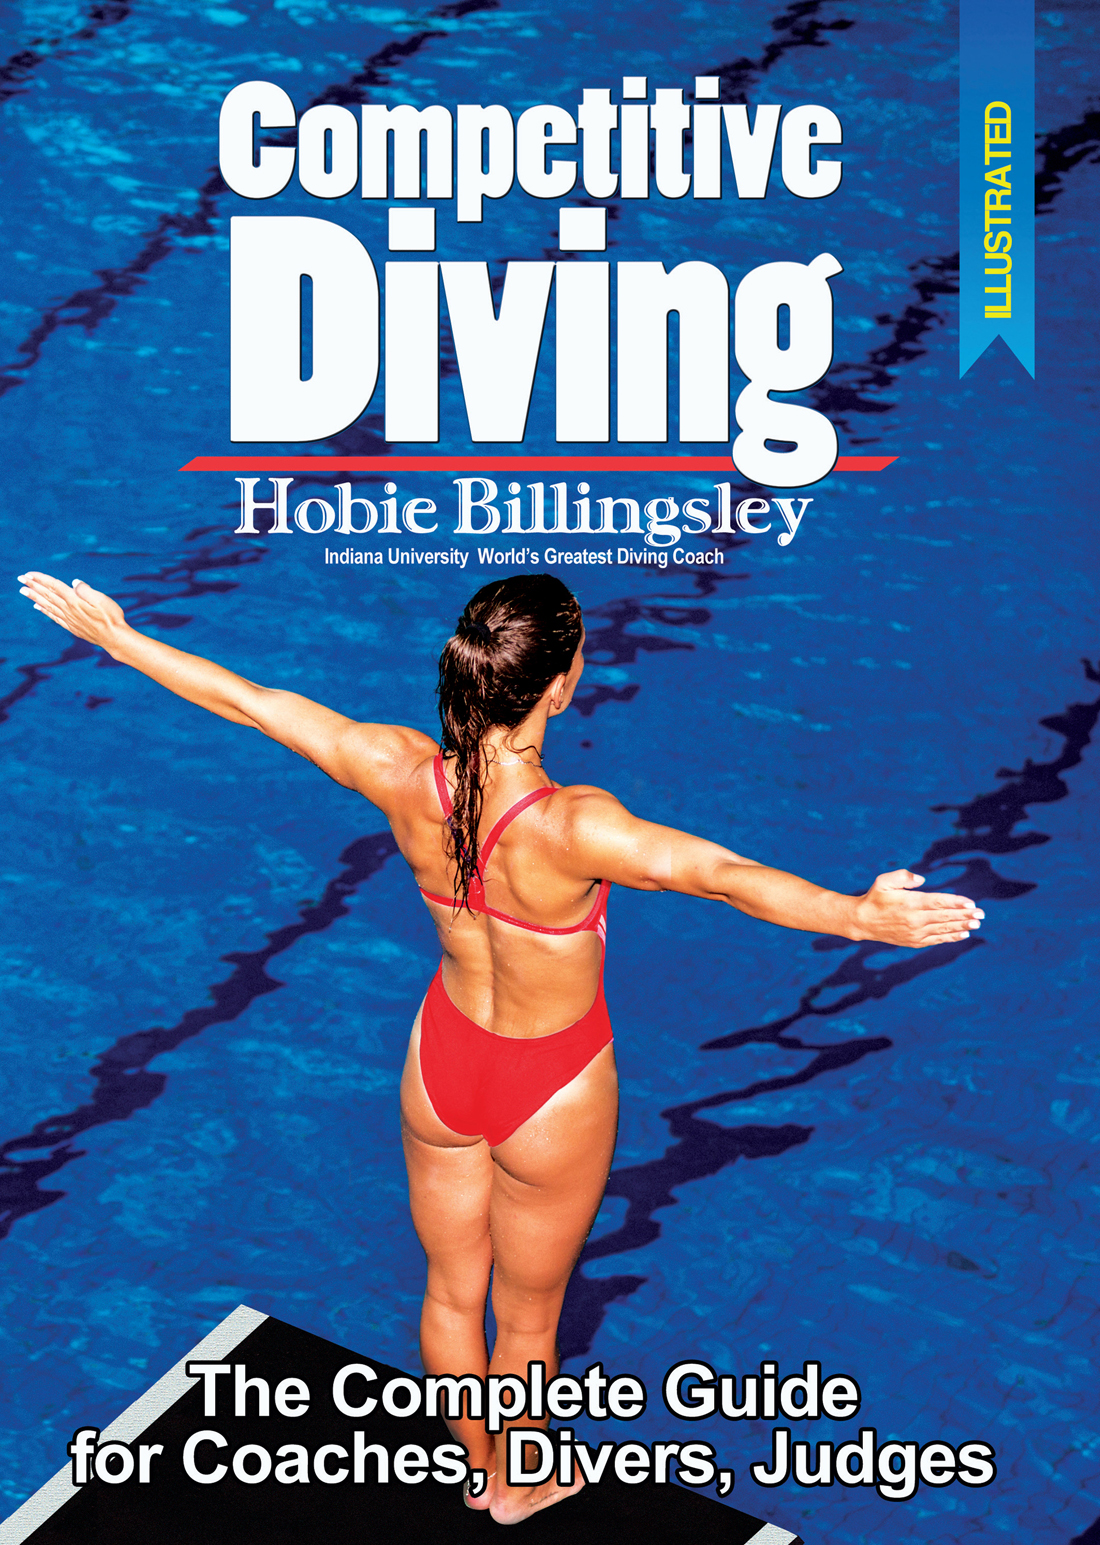 Competitive Diving Guide for Coaches, Divers, Judges